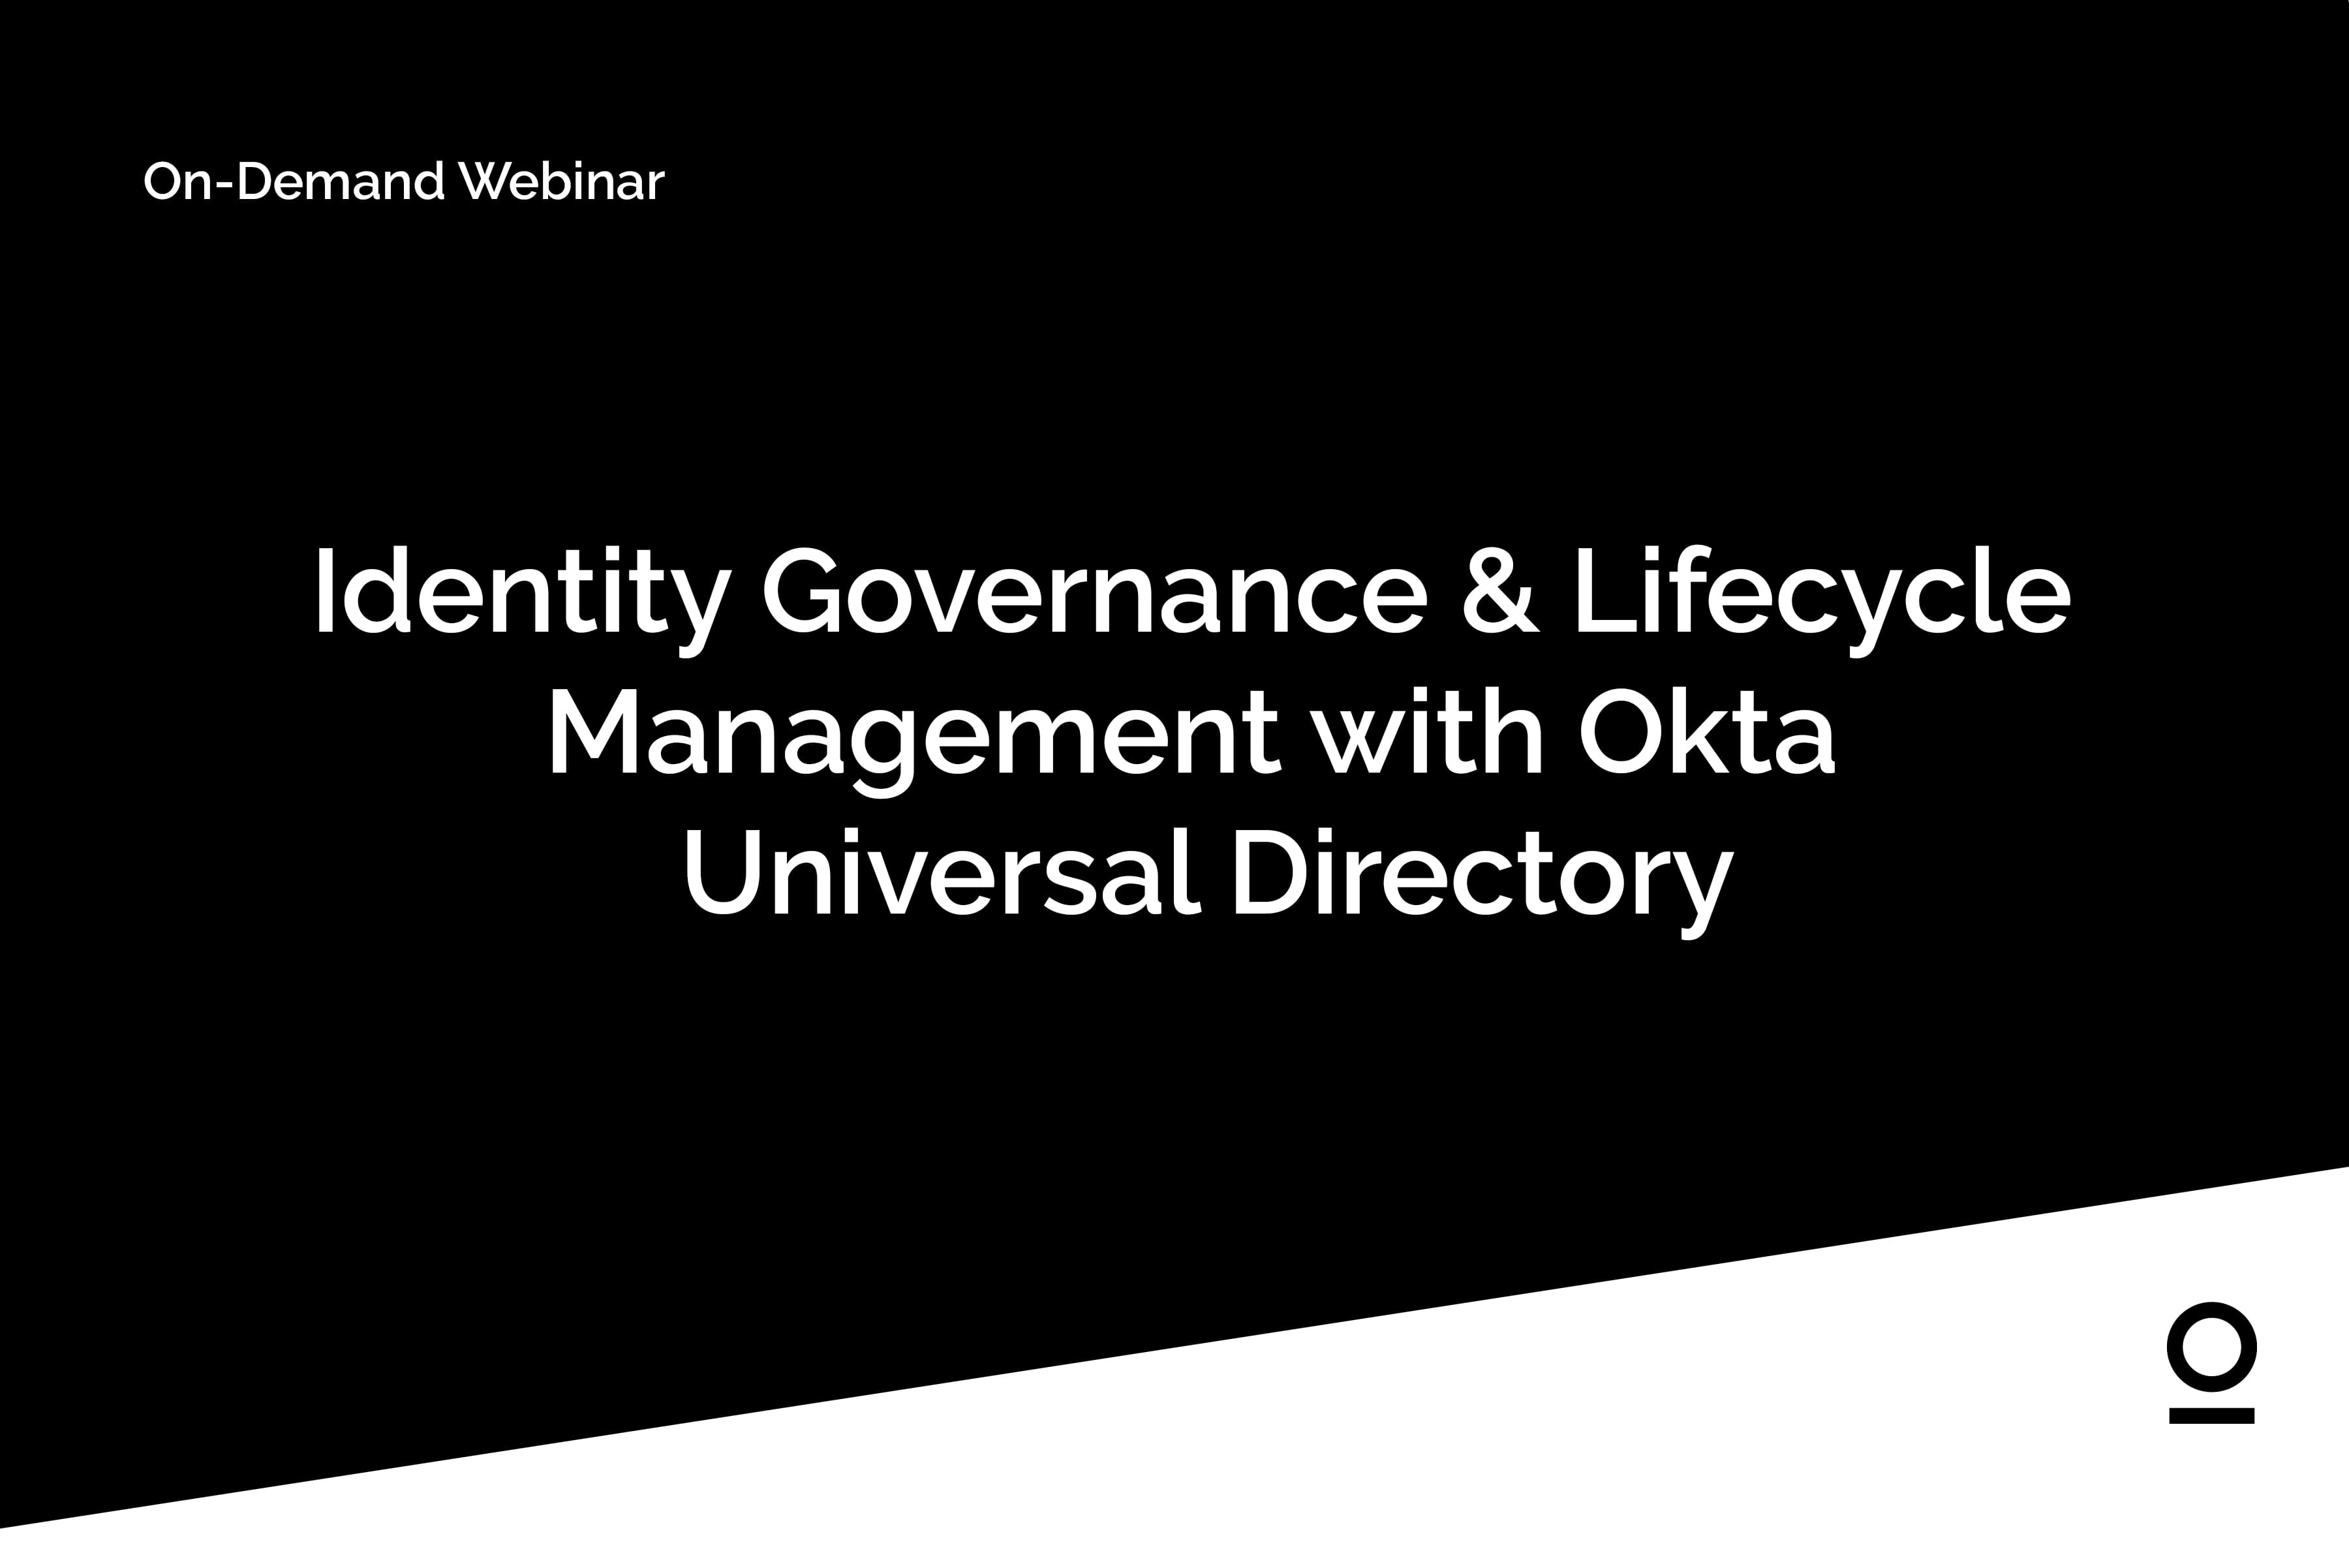 Universal Directory Okta How To